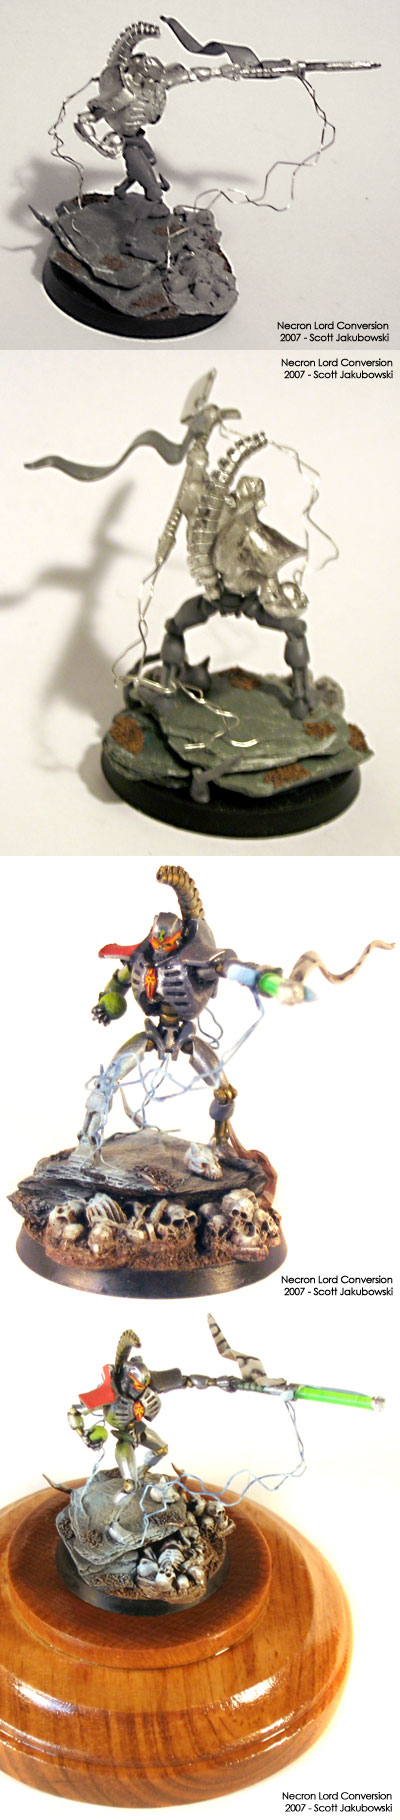 Necron Lord with Lightning Field and Warscythe